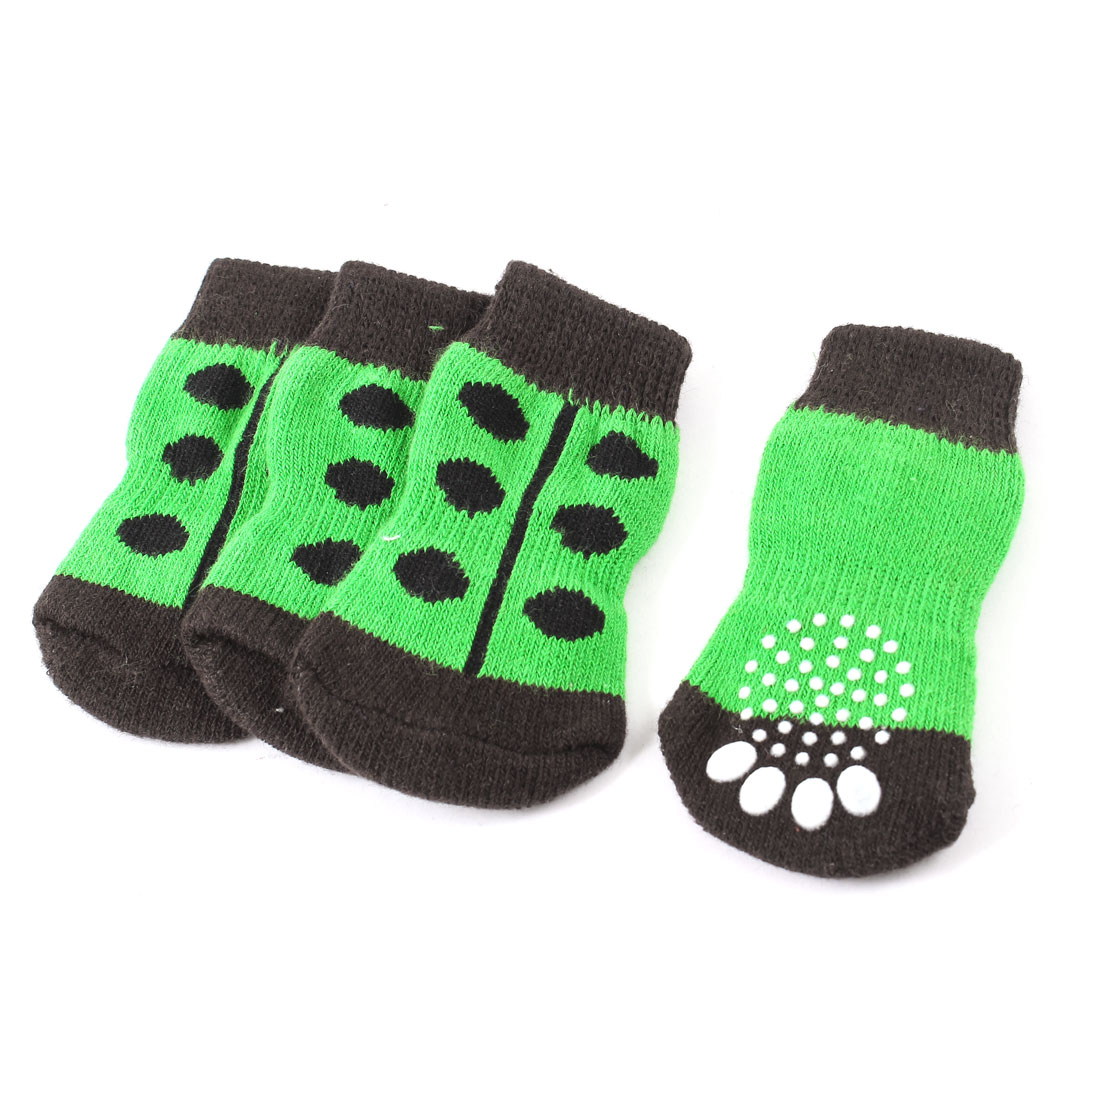 Unique Bargains 2 Pairs Paw Dot Printed Elastic Cuff Pet Dog Cat Knitted Socks Green Black L